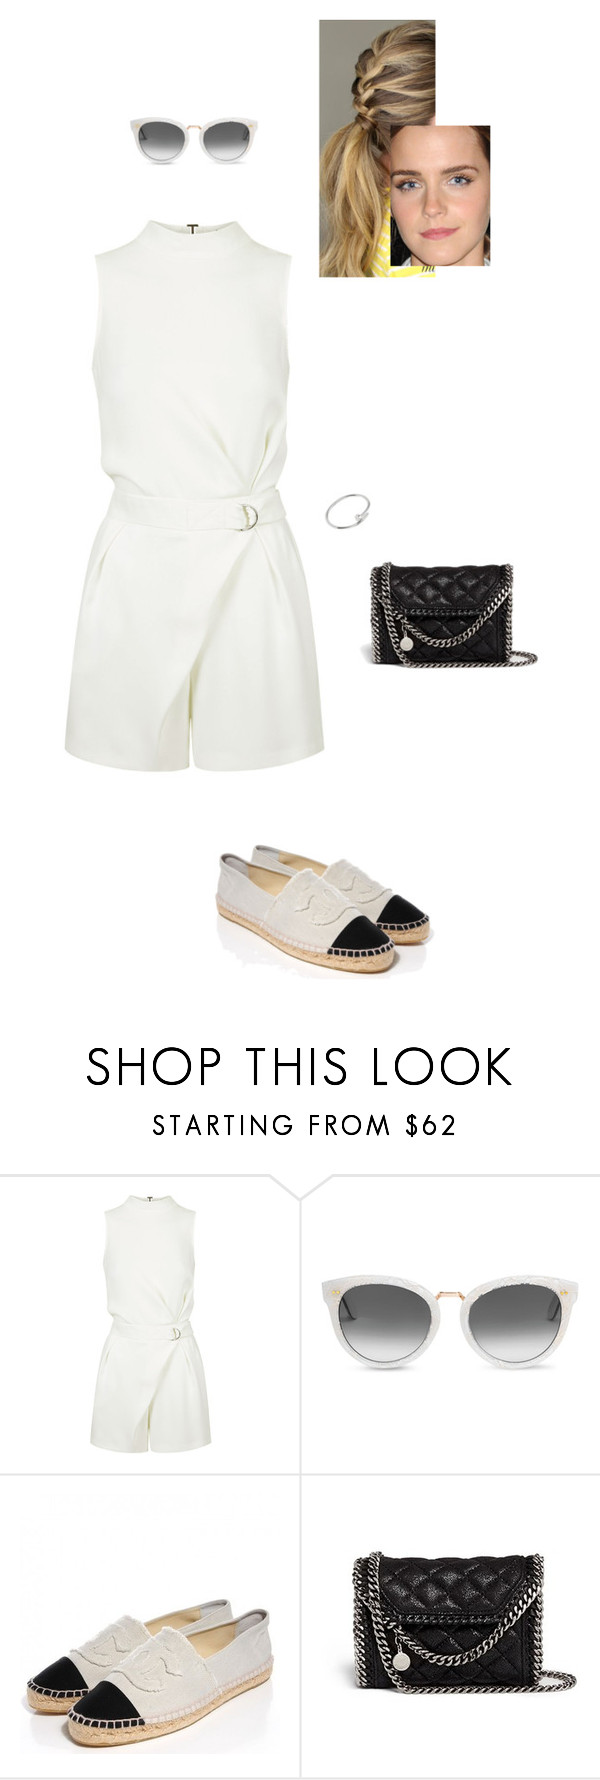 """""""Sem título #7502"""" by gracebeckett on Polyvore featuring moda, Topshop, TOMS, STELLA McCARTNEY e Narciso Rodriguez"""